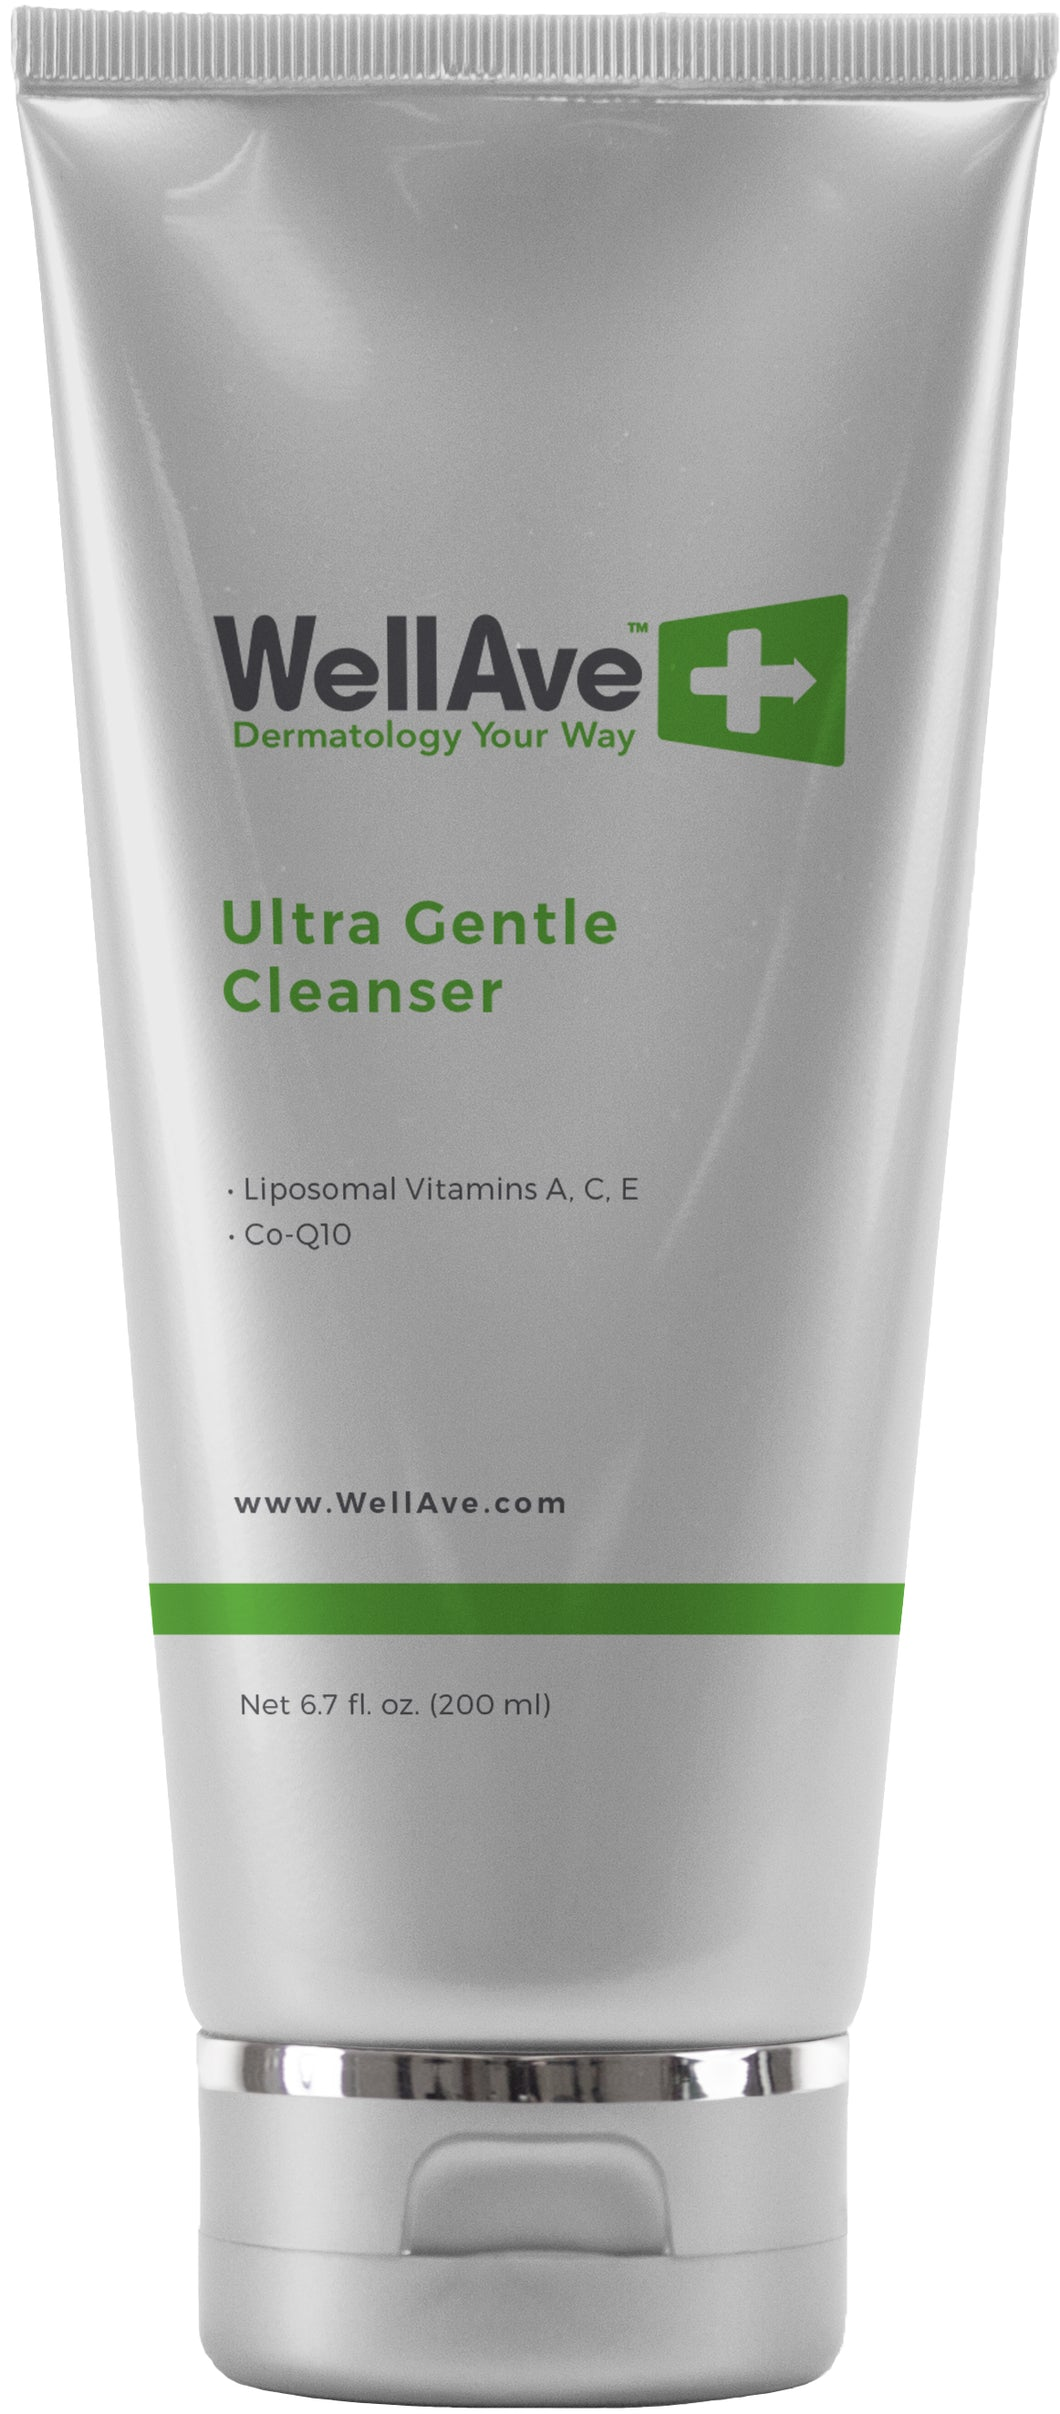 WellAve's Ultra Gentle Cleanser